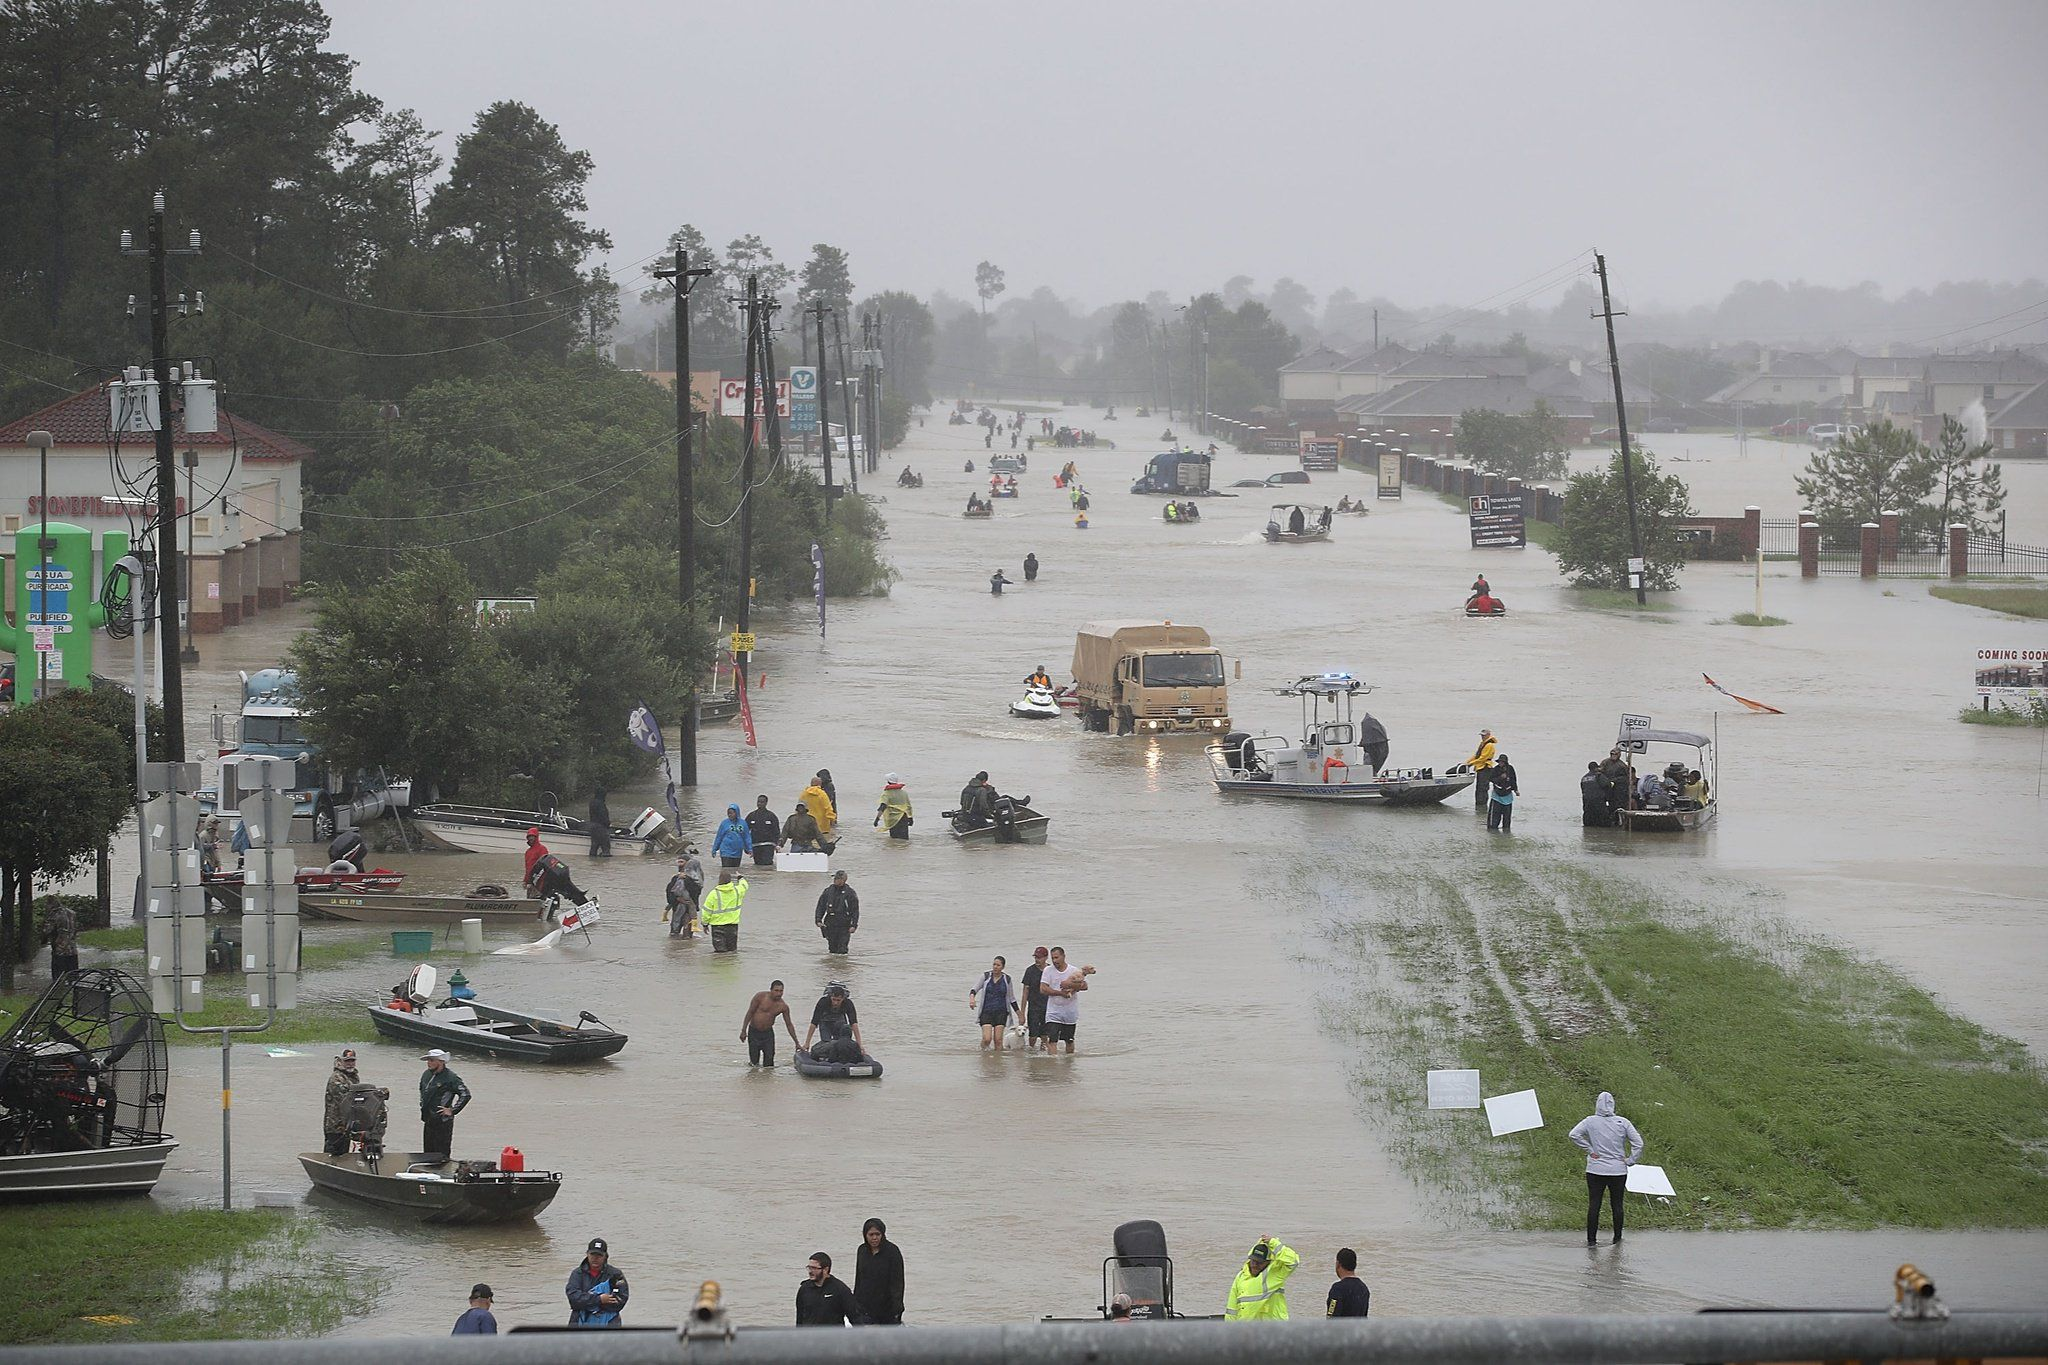 Damage From Harvey And Irma Could Hit 200b Construction Dive 13 Sept 2017 Houston Flooding Hurricane Flood